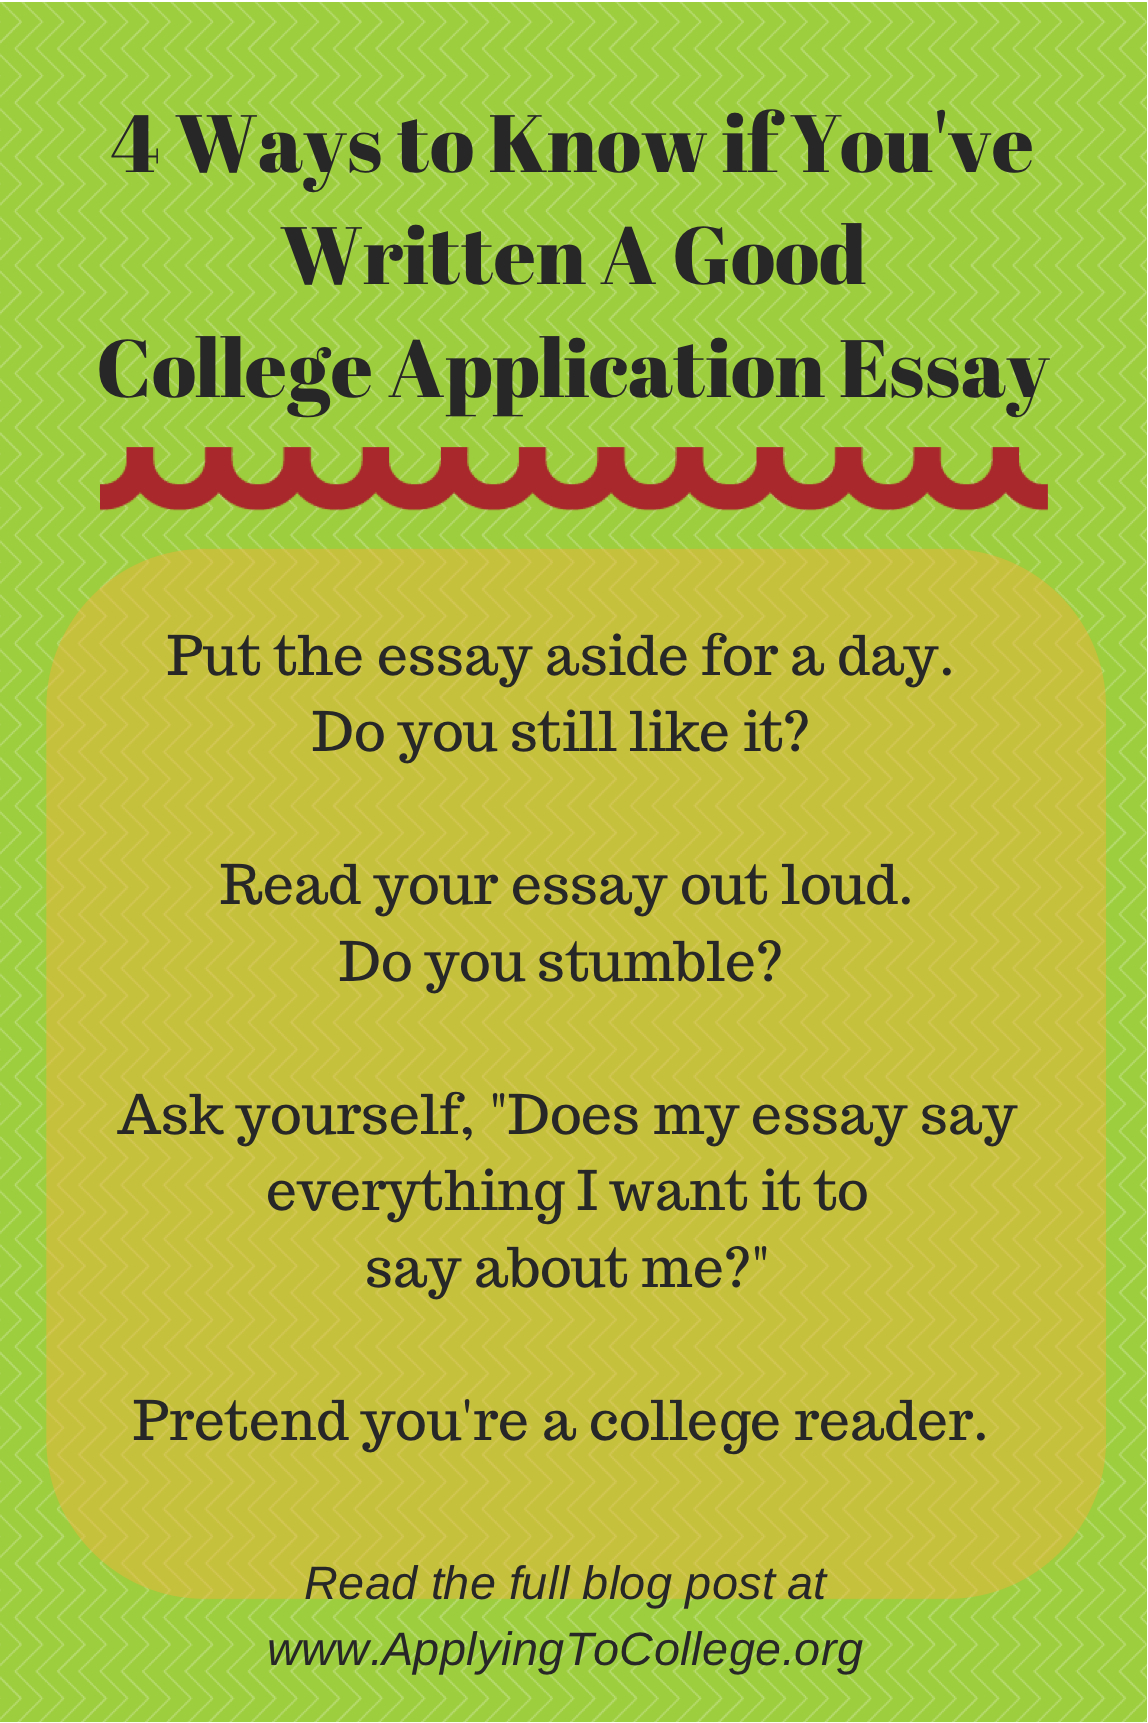 sample essays about yourself essay about myself pmr websites to  how to write a good essay about myself can youwrite an essay for me do my